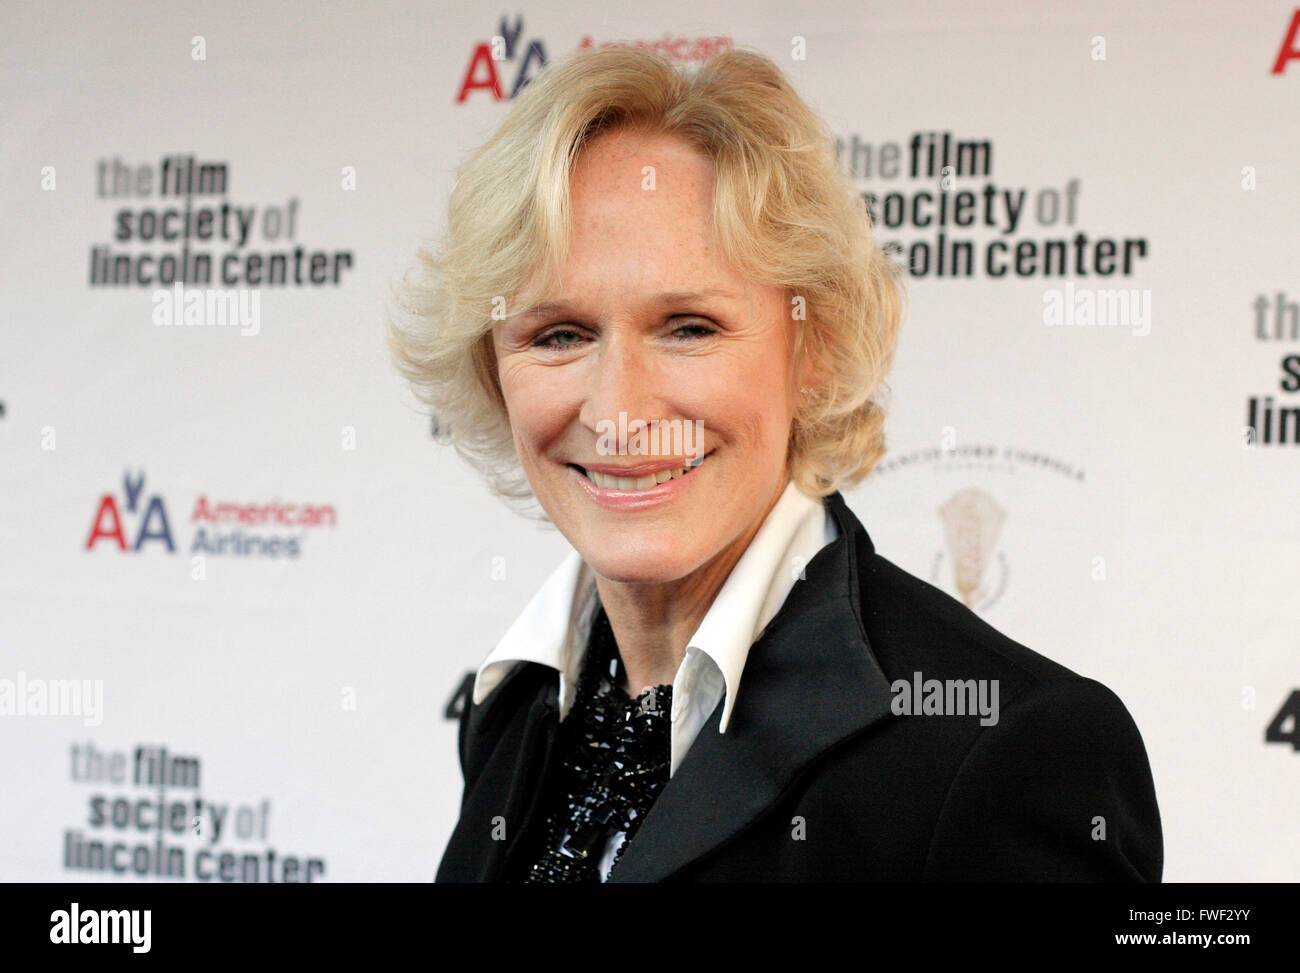 Glenn Close at the 36th Annual Film Society Gala Tribute honors Tom Hanks with the Charlie Chaplin Award (named - Stock Image